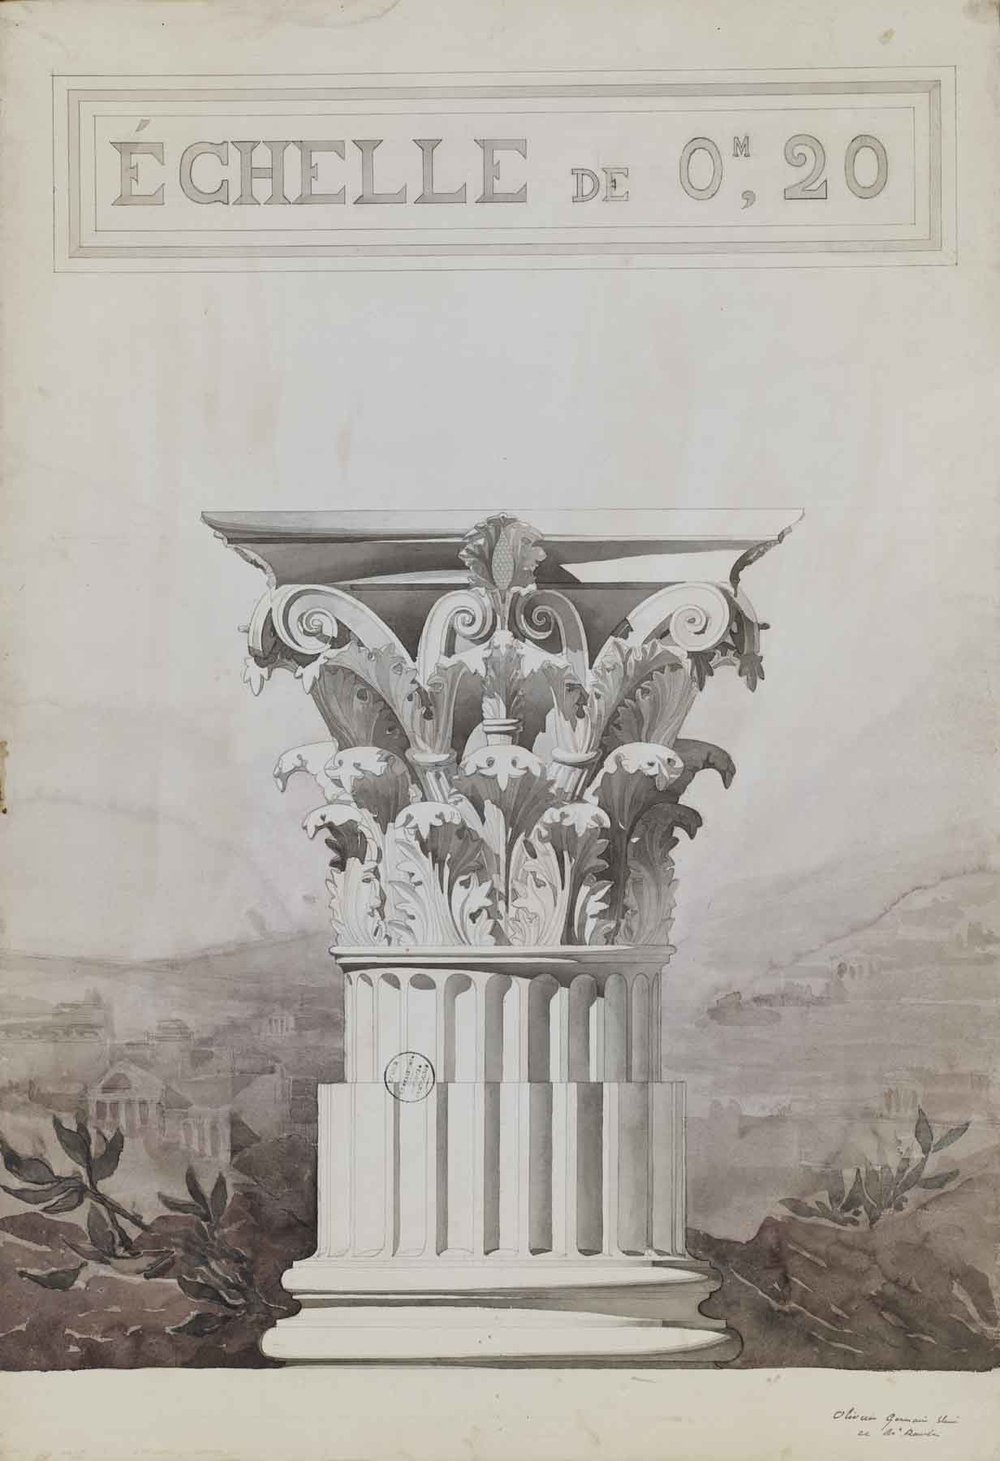 "Jules-Germain Olivier (French, 1869-1940),  Study of a Corinthian Column Capital,  1890-1900, pencil and watercolor on paper, 43 3/4 x 31 7/8"" framed"